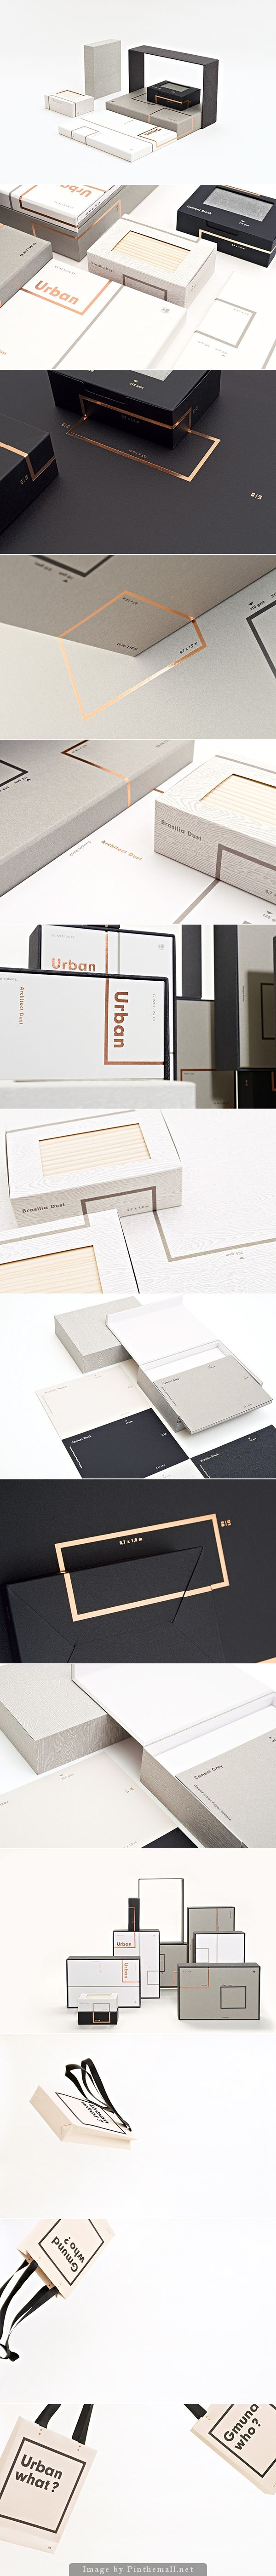 Amazing packaging and graphic Indentity. I love minimal stuff with a detail that make them special and unique.